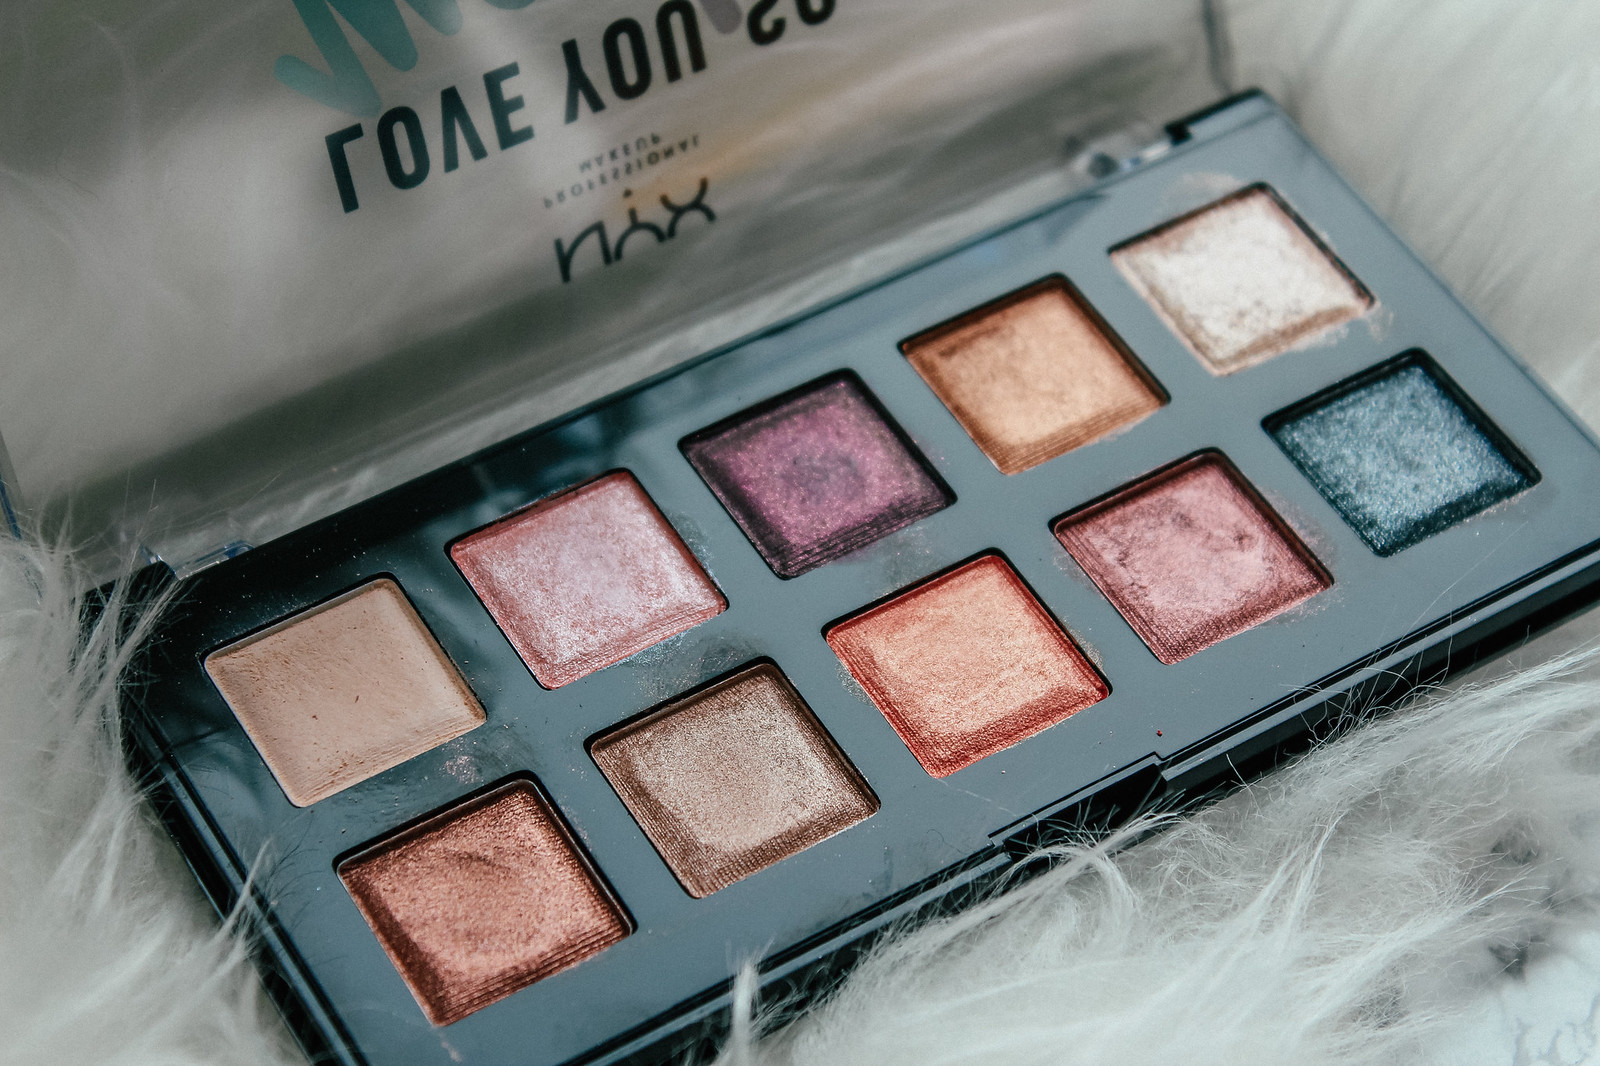 NYX Love you So mochi palette review